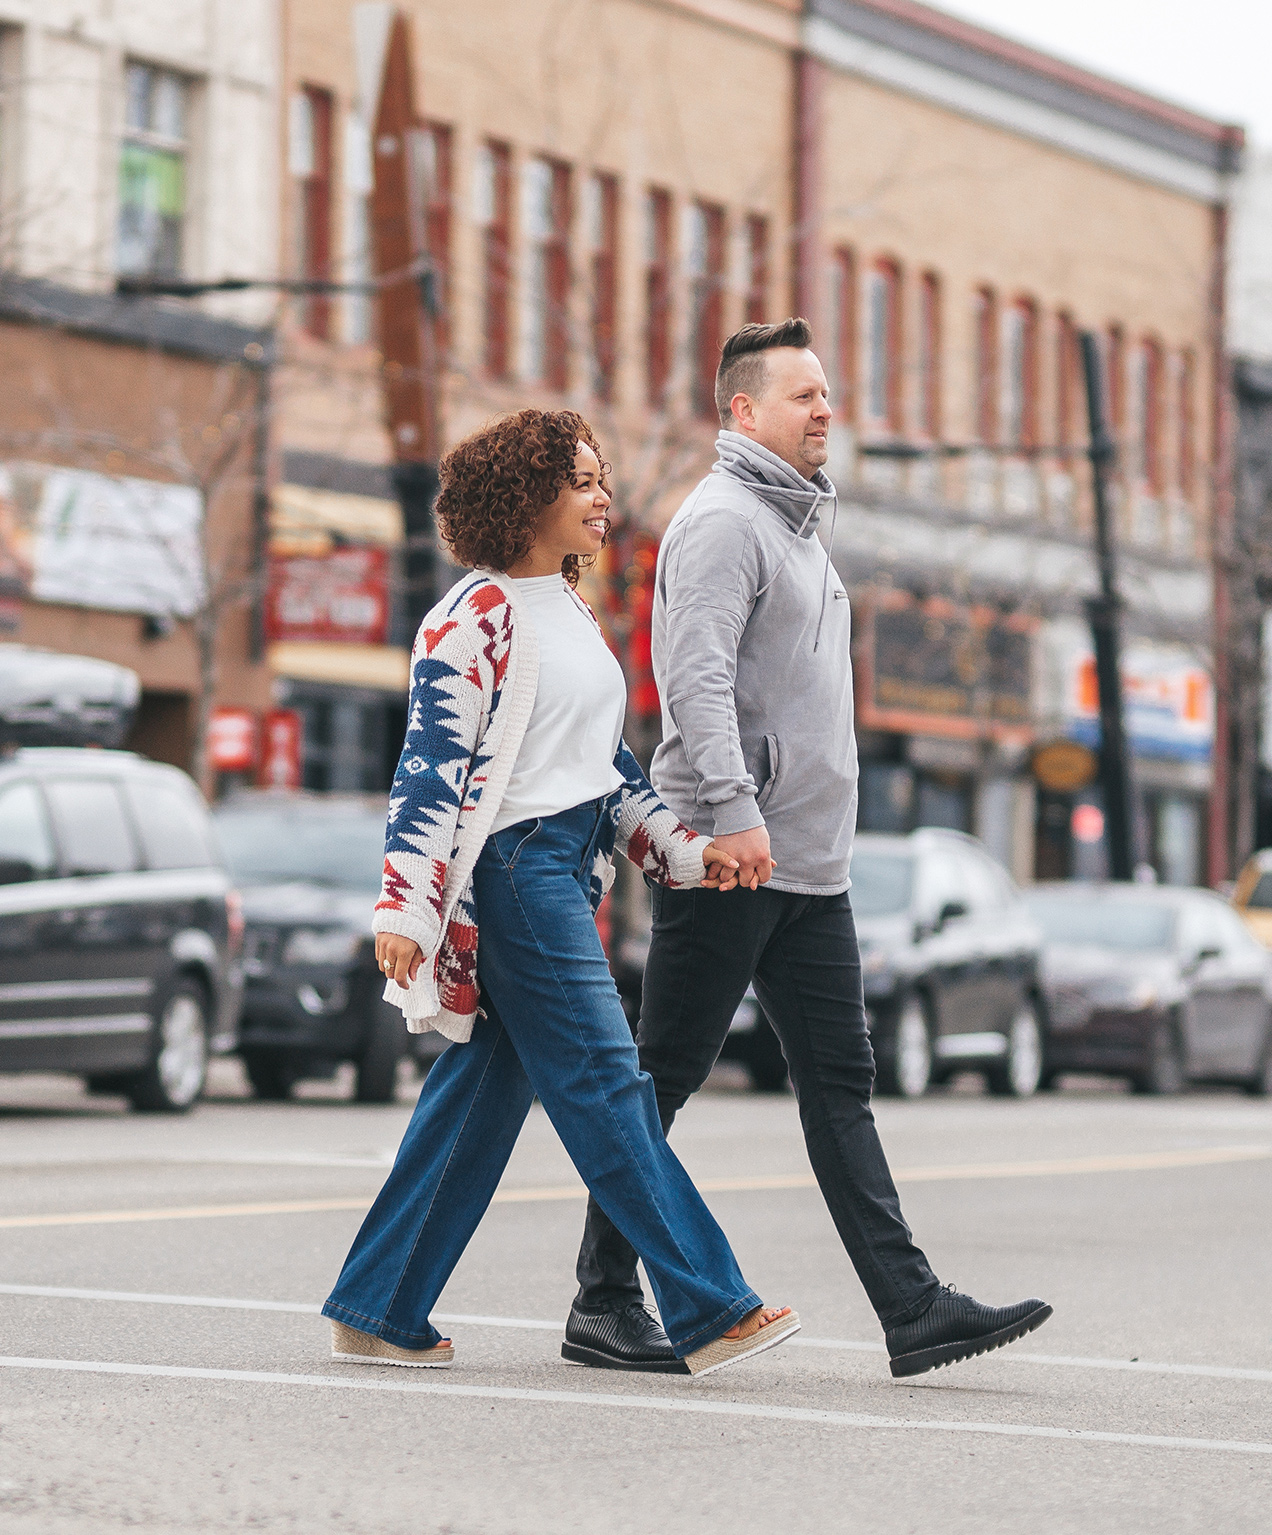 retail shoe store marketing couple walking downtown in new shoes